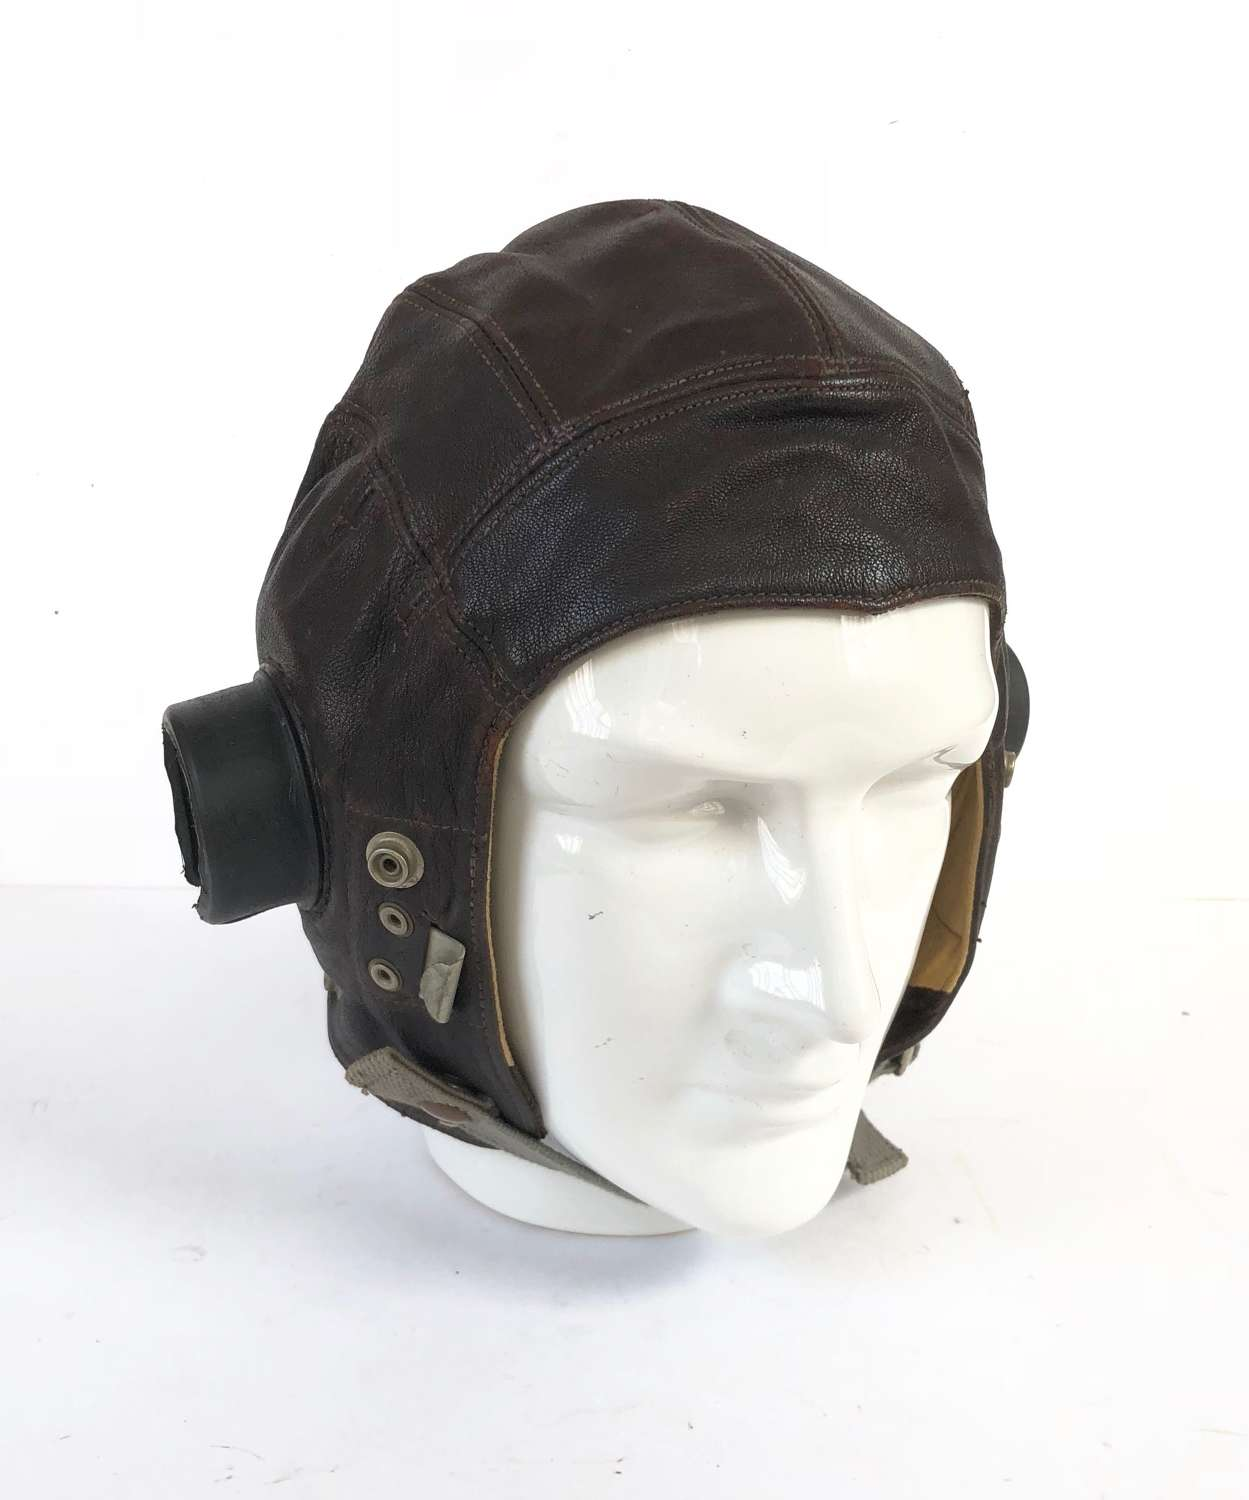 RAF WW2 Period C Type Leather Flying Helmet.